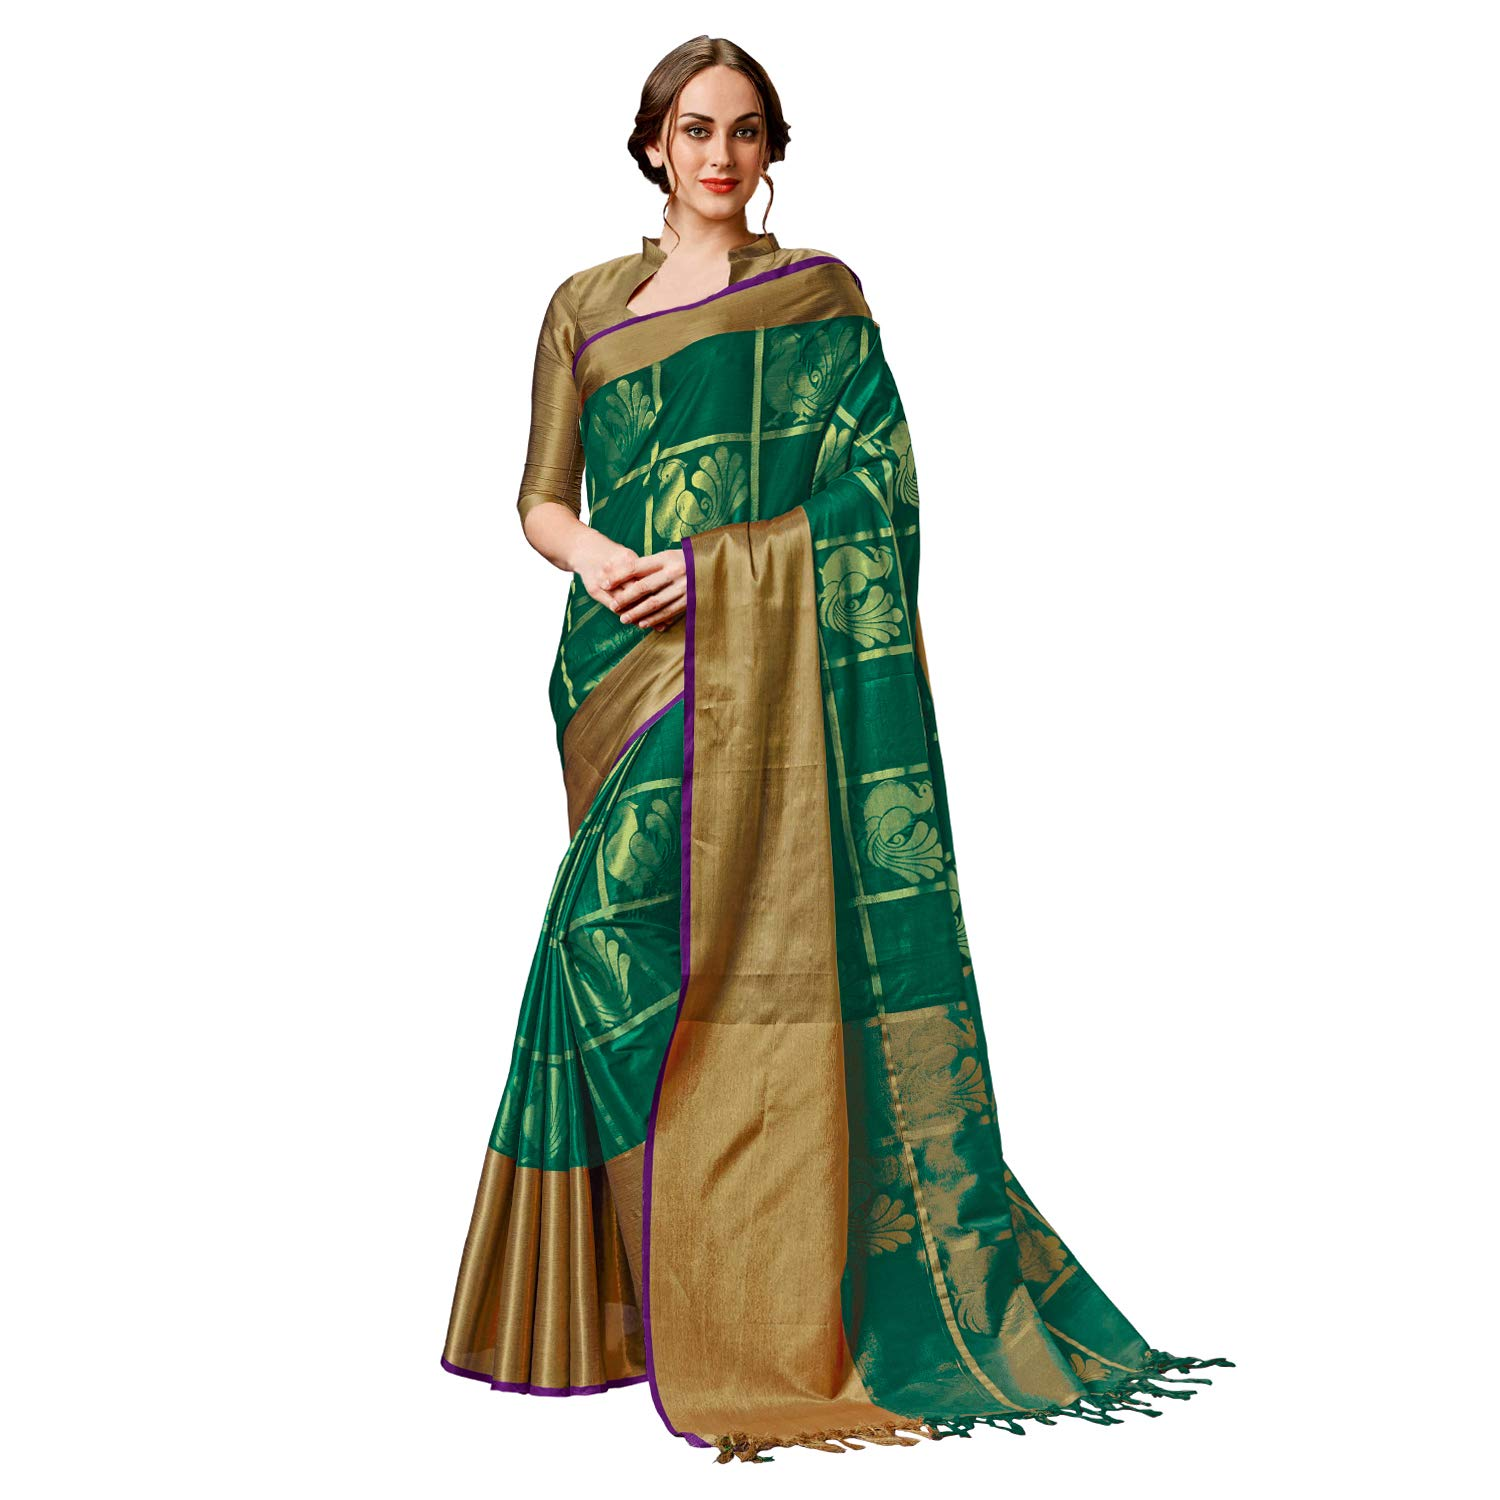 2b81745179bce SP AURA Women s Ethnic Feathersoft Cotton Saree with Blouse Piece (Swarna) ( Mustard Golden)  Amazon.in  Clothing   Accessories